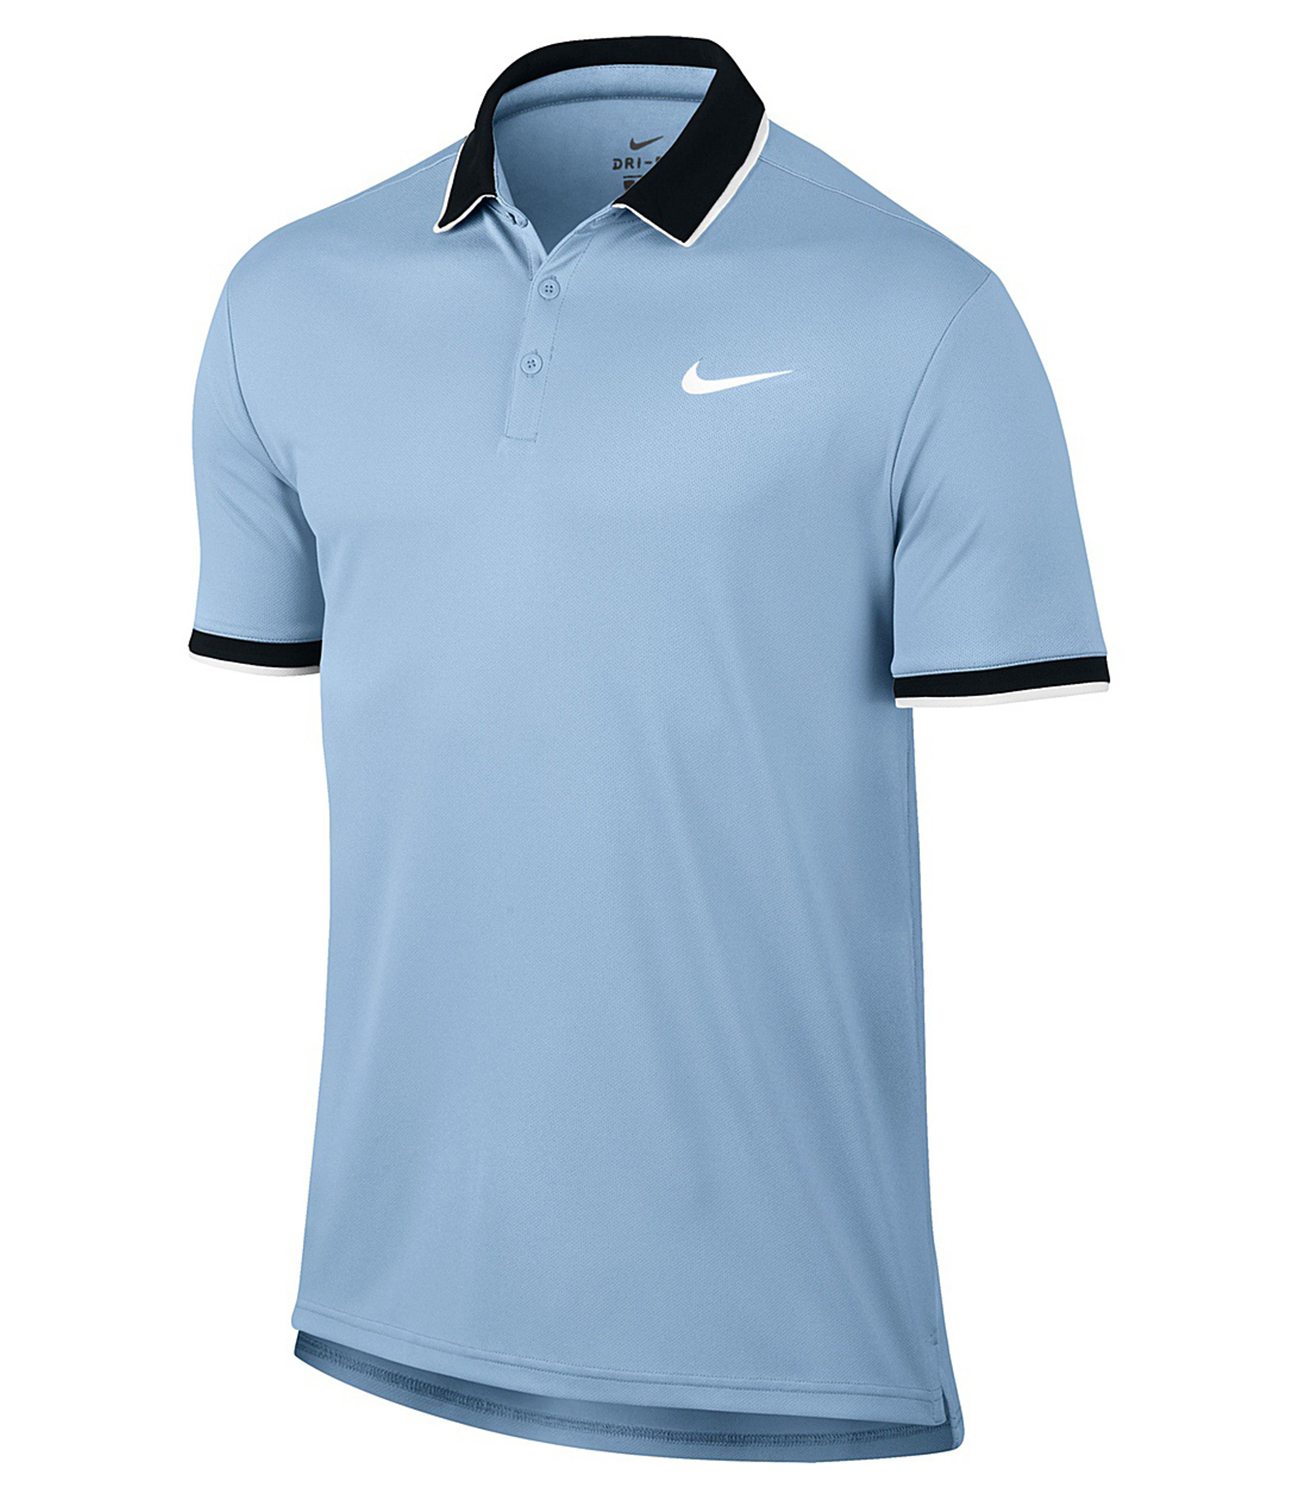 b9beb497a16cd Nike Court Dry Tennis Polo Форма для тенниса 830849 466 купите в ...